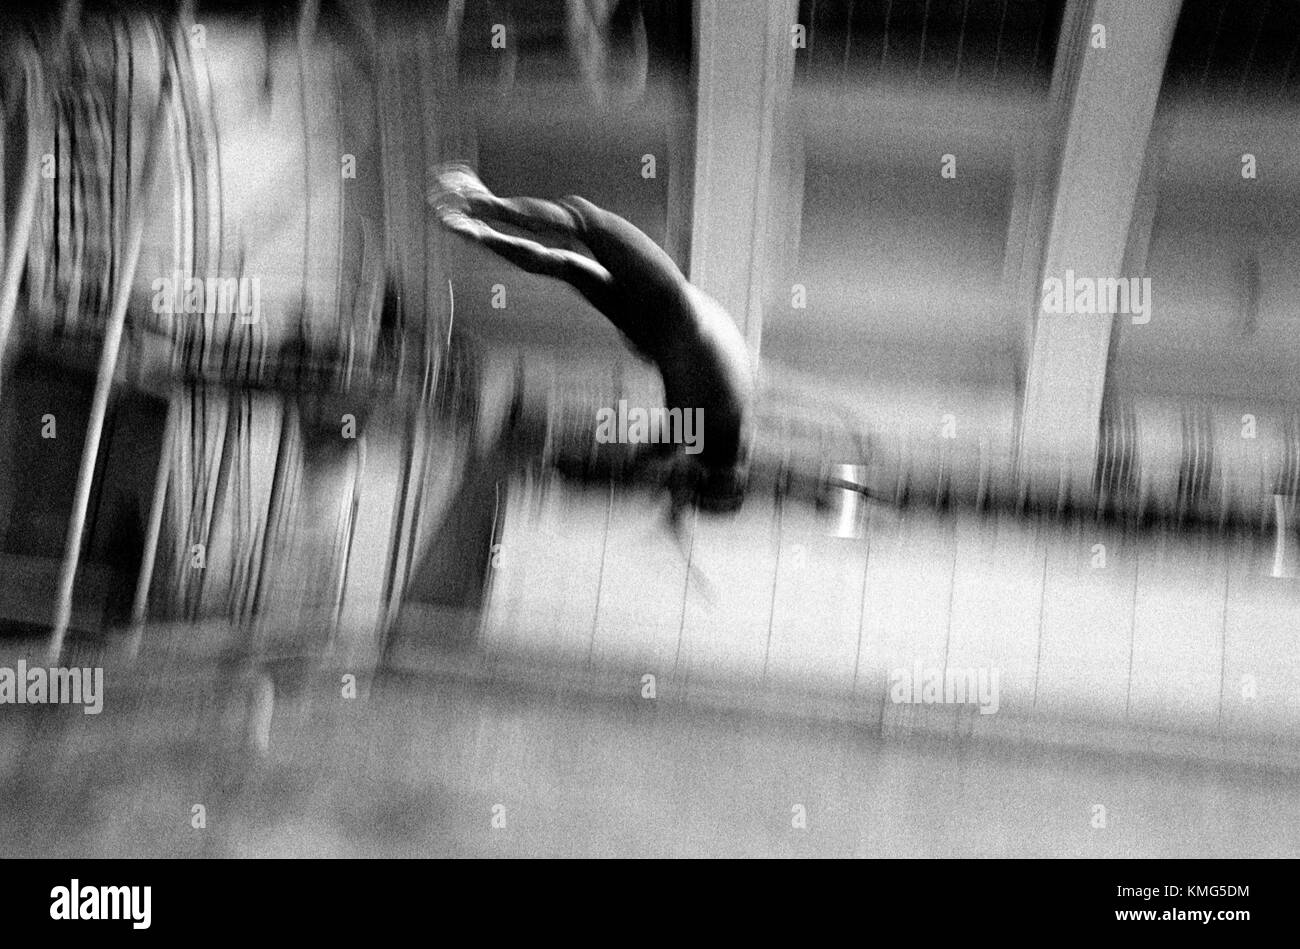 Diving at an indoor swimming pool. THIS IS AN UPRIGHT PHOTOGRAPH     HOMER SYKES - Stock Image